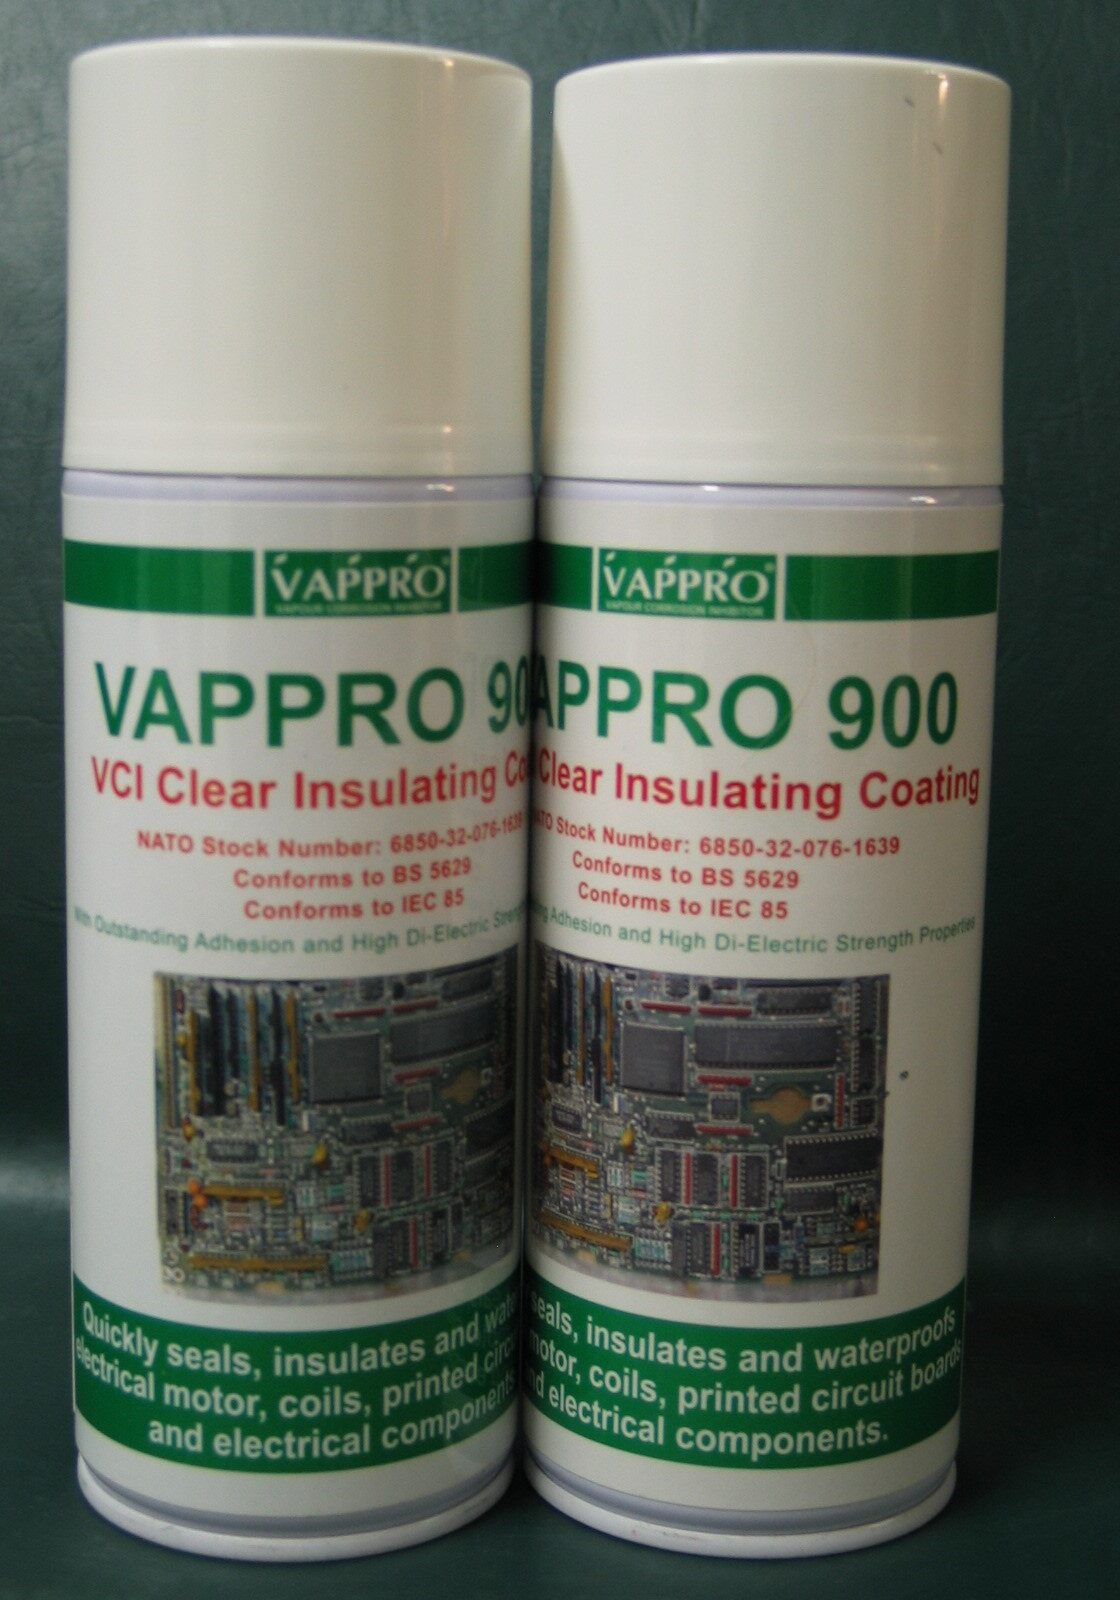 2 Cans Vappro 900 VCI insulating coating in aerosol can